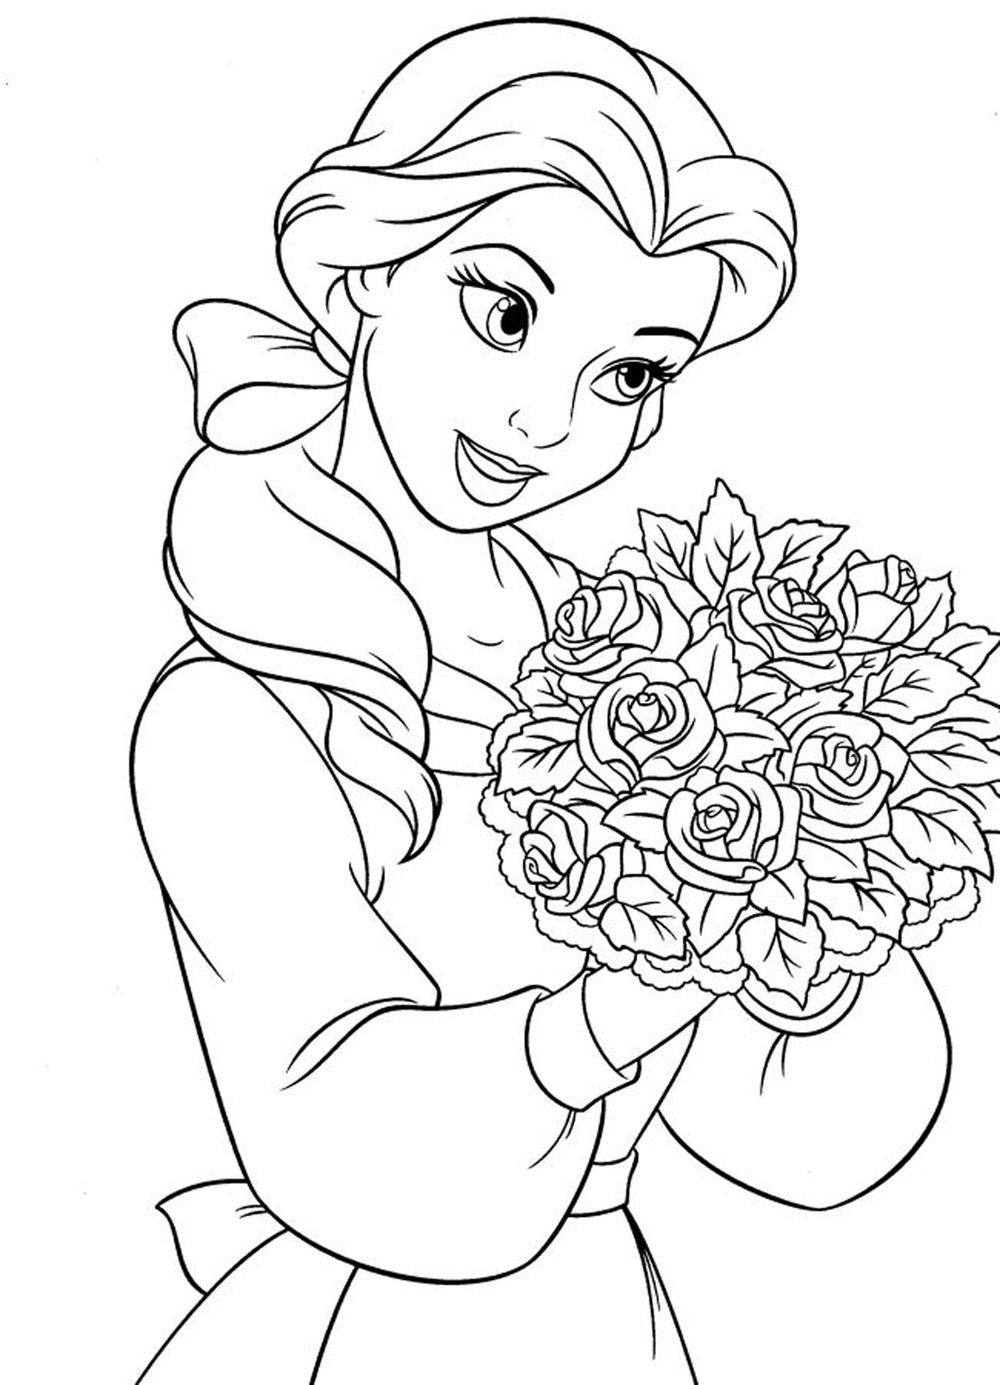 Adult Best Disney Color Pages Free Gallery Images cute free disney coloring pages ariel princess pinterest coloring